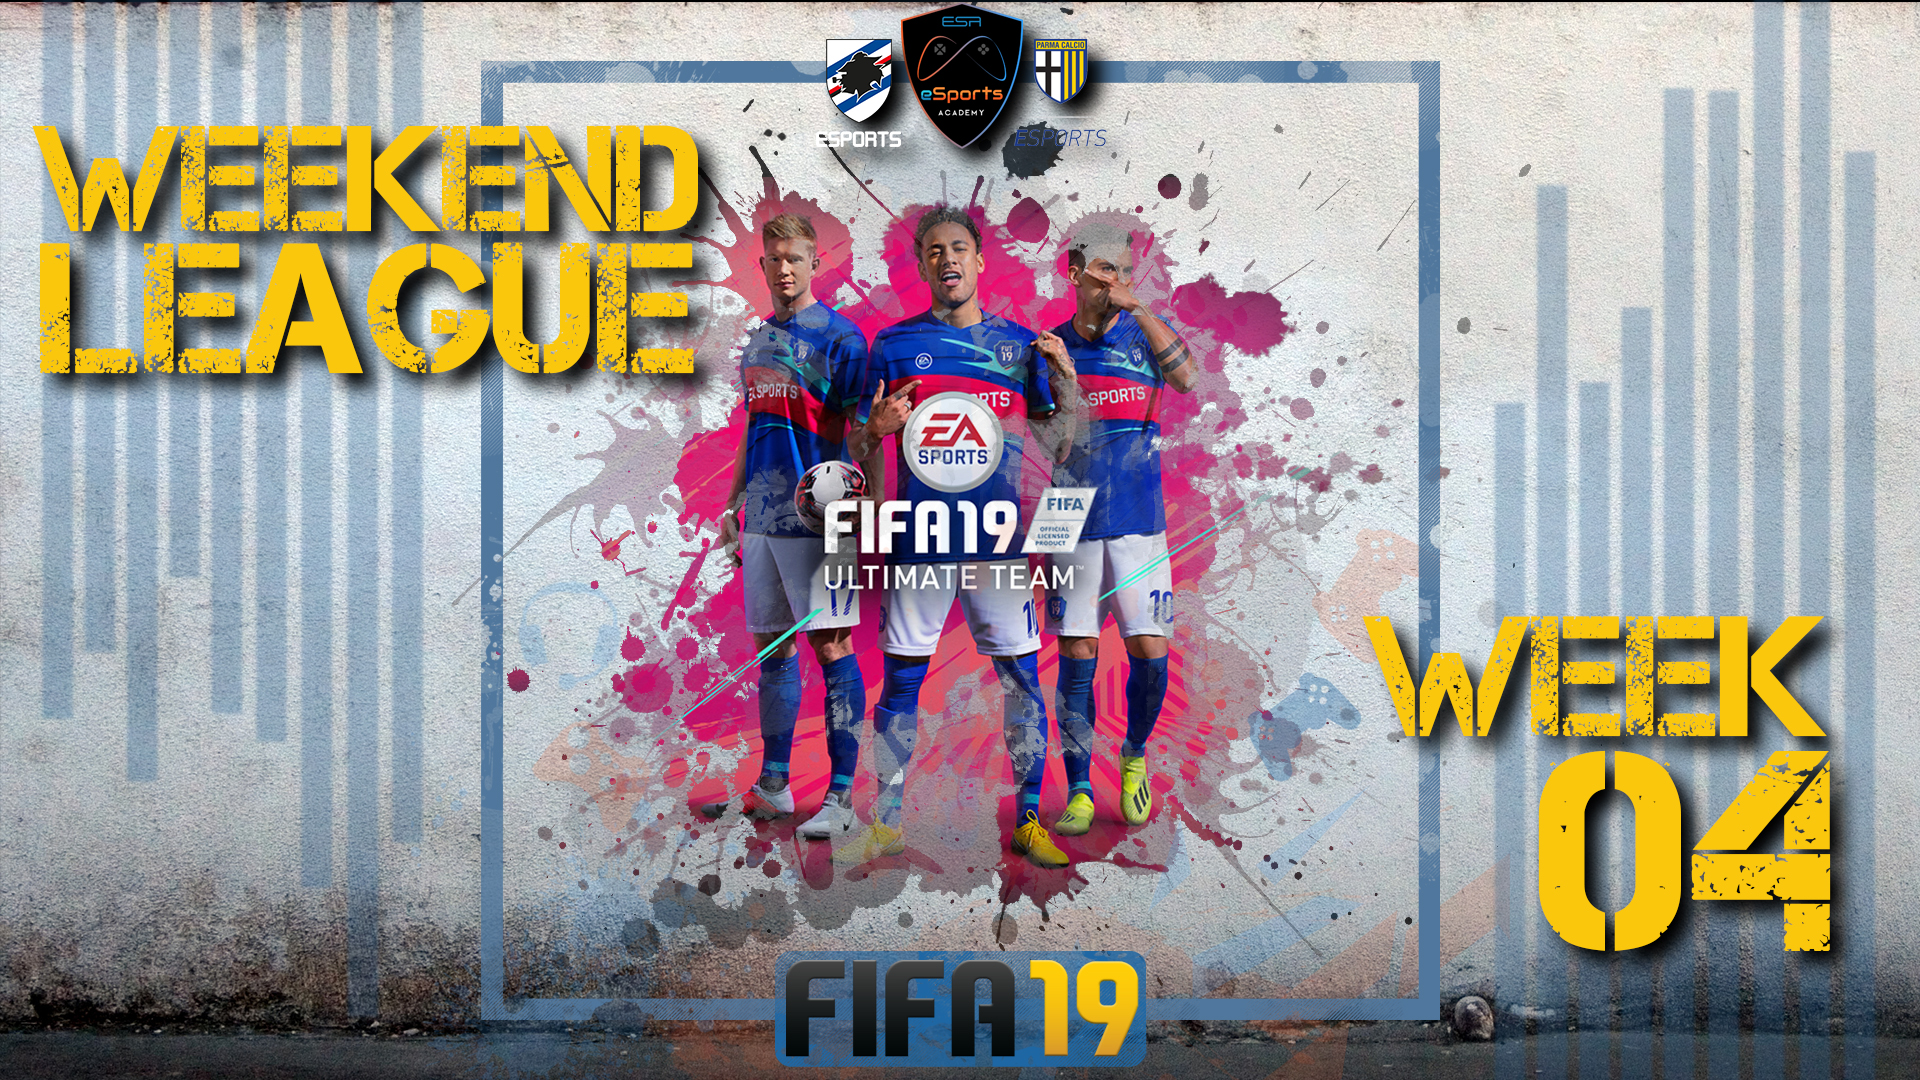 Fifa19_Weekend League_Week04.jpg